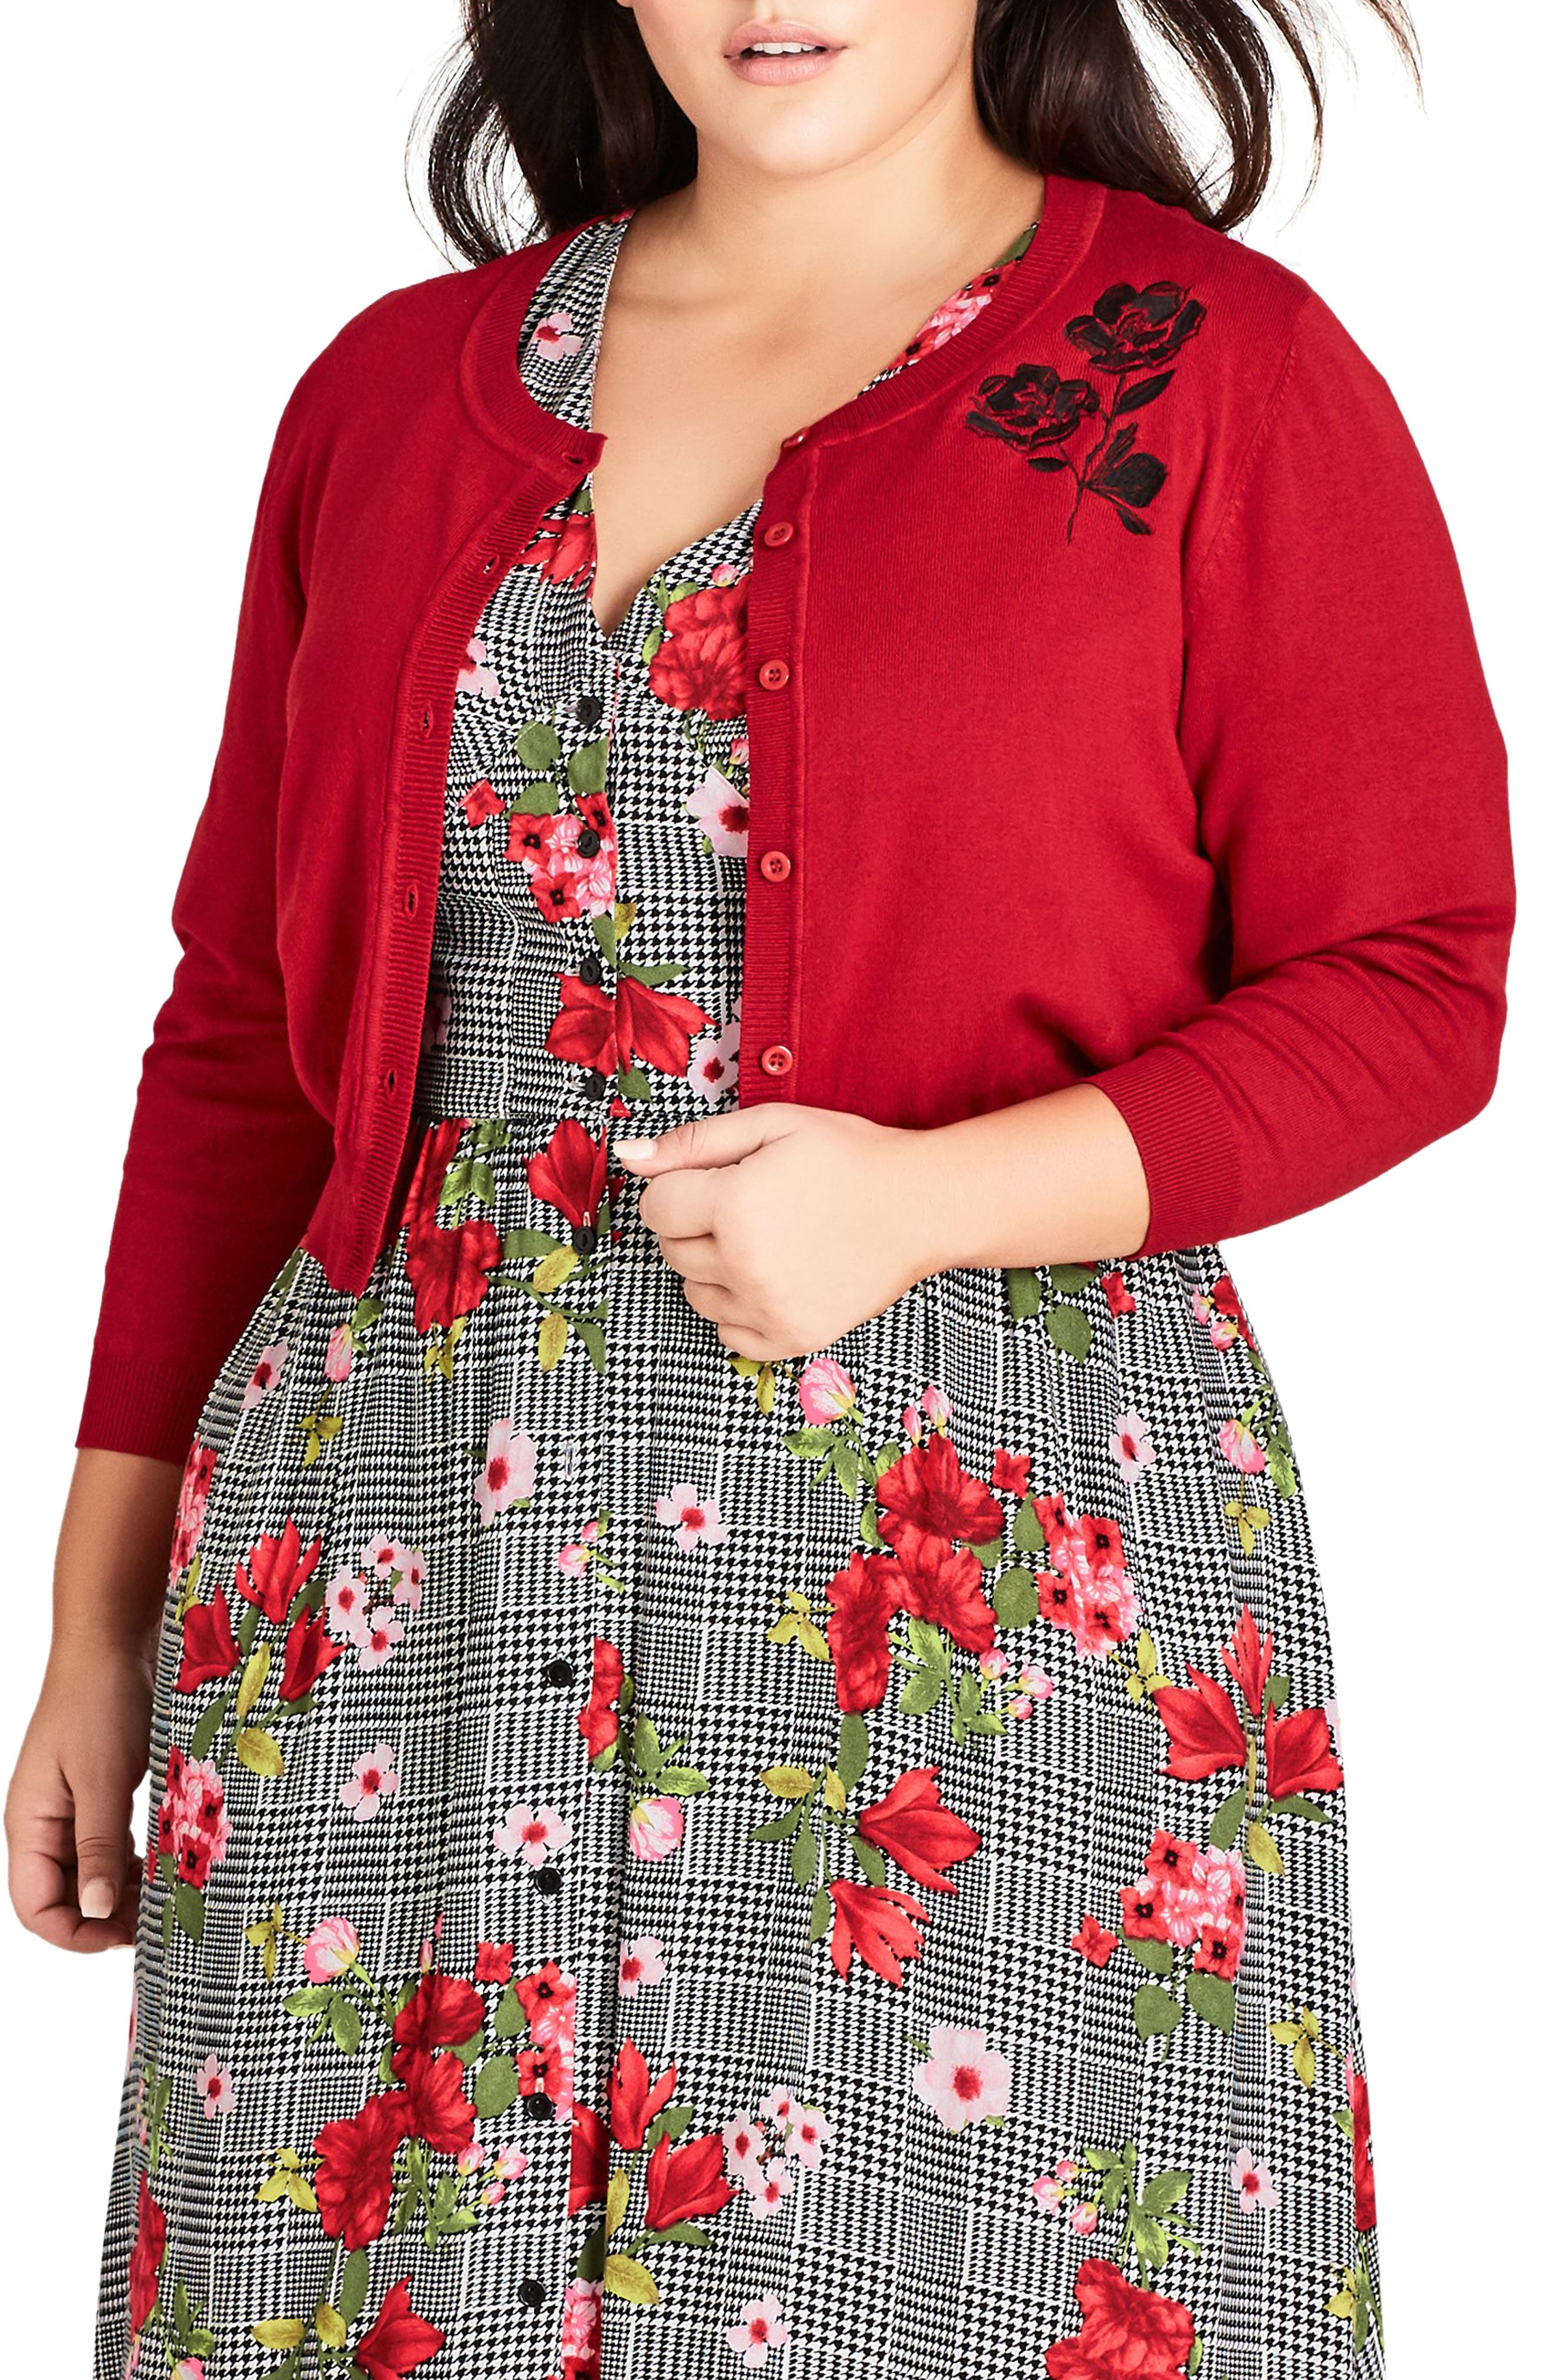 Vintage Sweaters & Cardigans: 1940s, 1950s, 1960s Plus Size Womens City Chic Cute Poppy Cardigan $59.00 AT vintagedancer.com